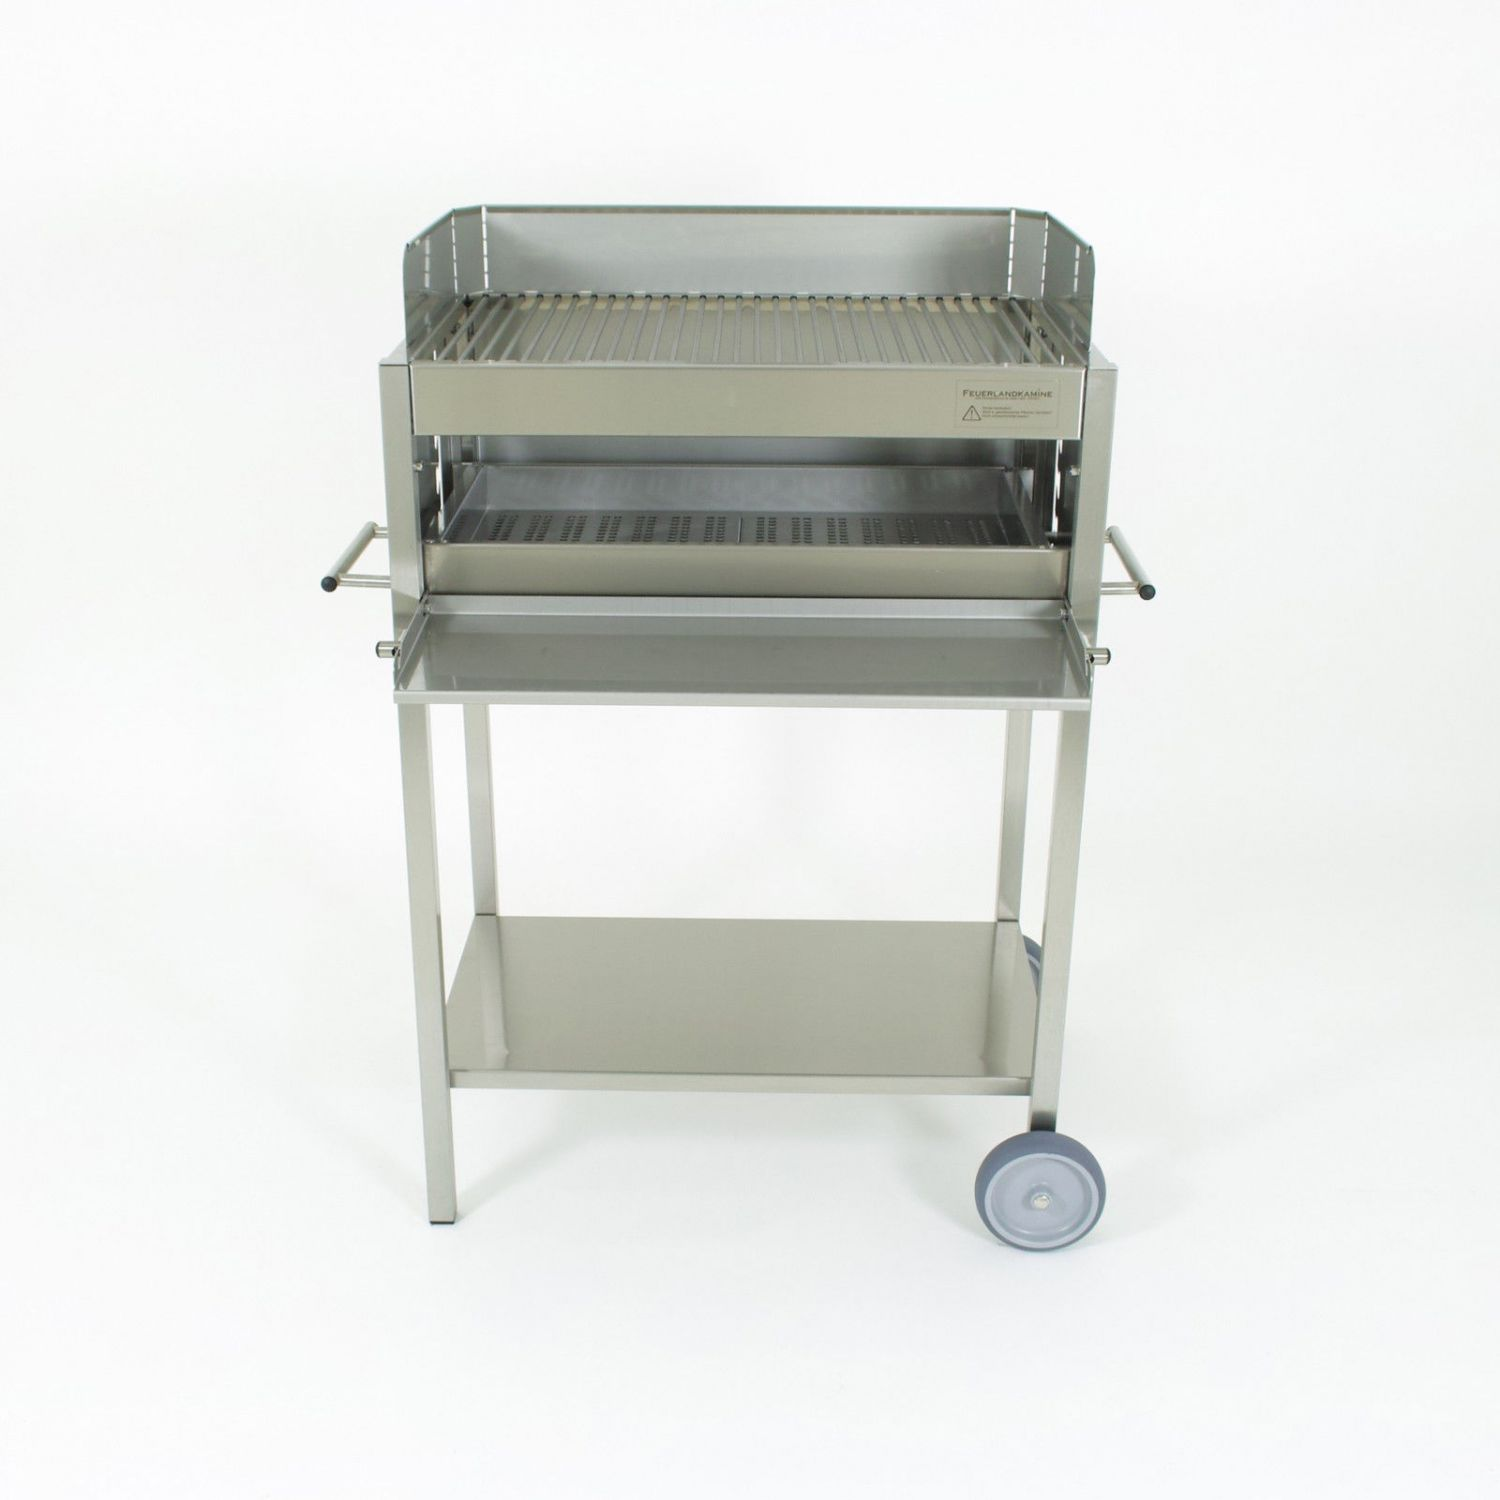 edelstahl grill holzkohle grill typ ibiza grill wagen bbq stand grill gastro ebay. Black Bedroom Furniture Sets. Home Design Ideas